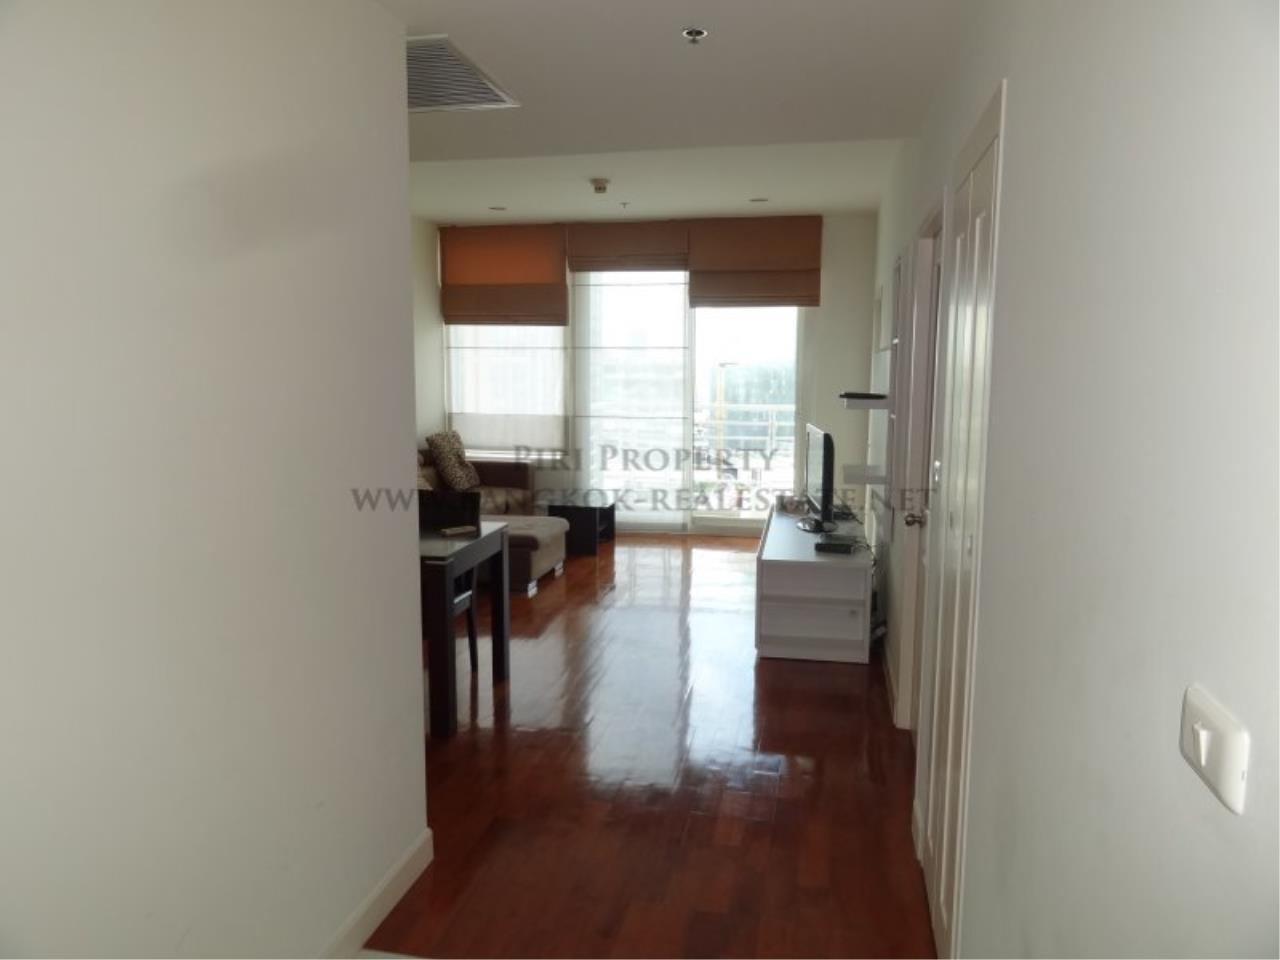 Piri Property Agency's Siri Residence - Big 1 Bedroom Condo in Sukhumvit 24 3